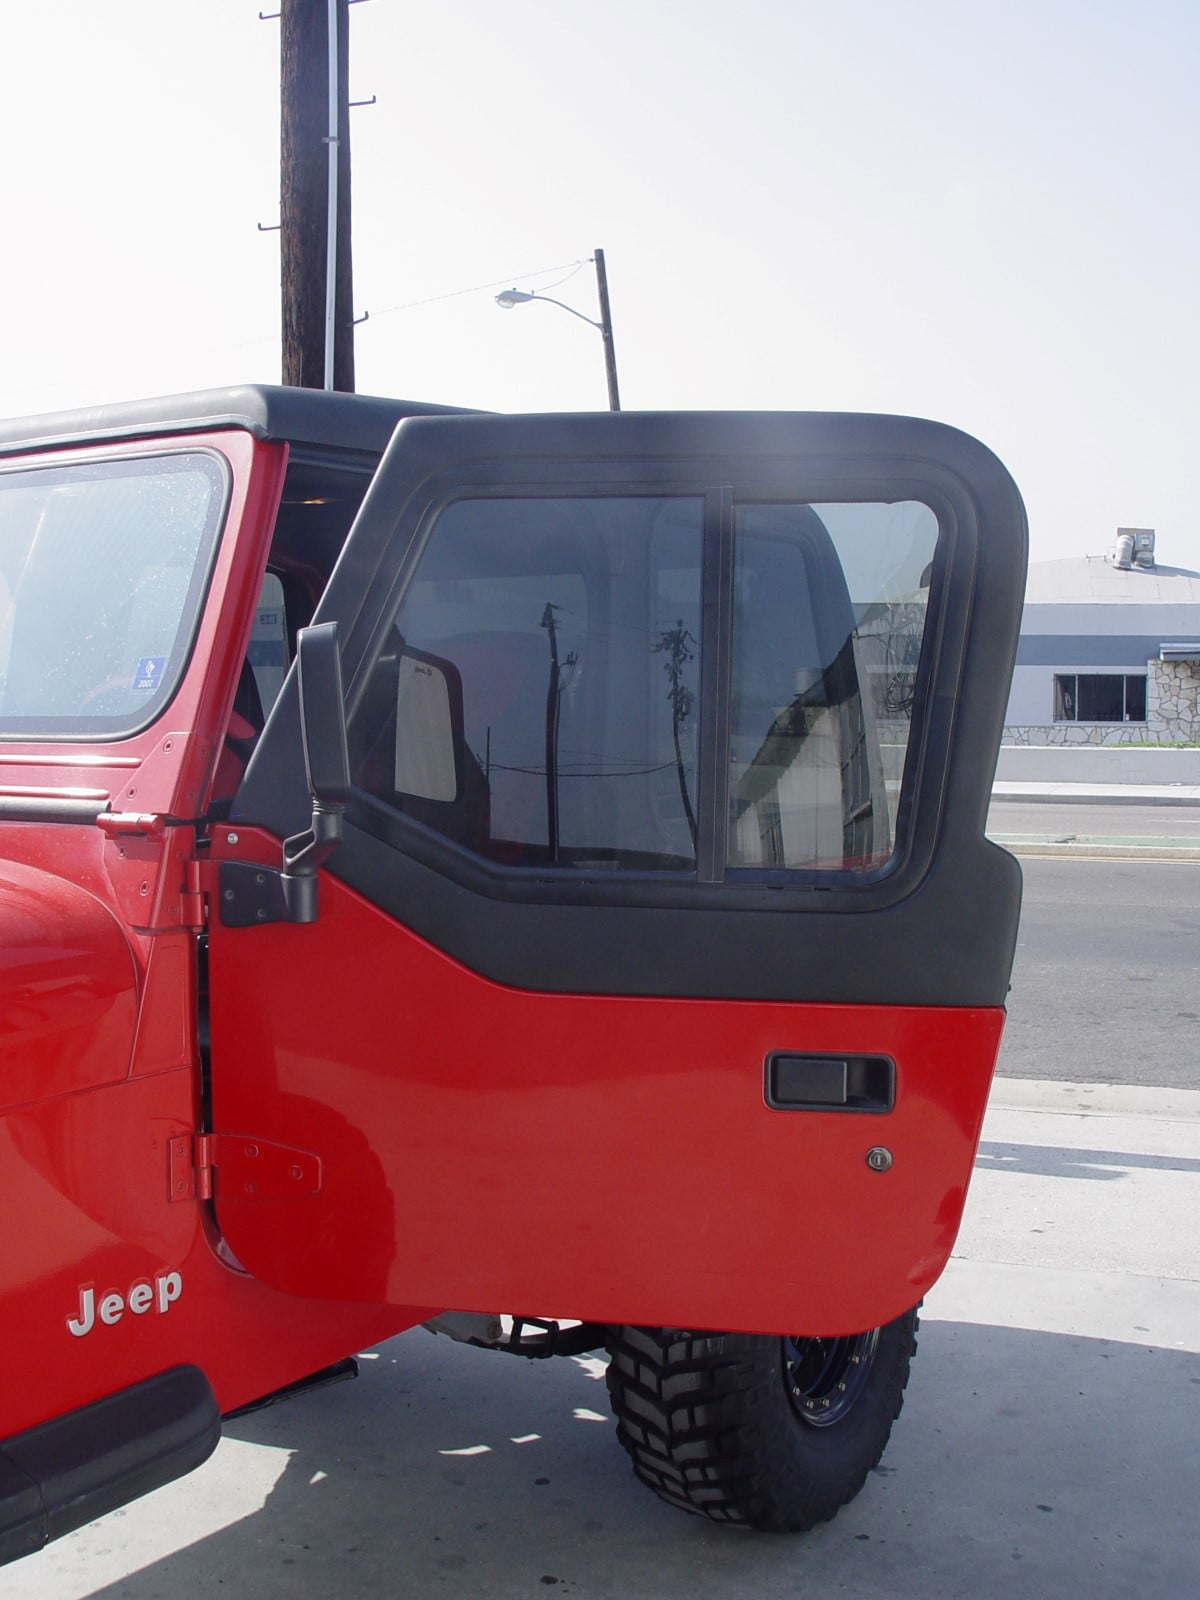 Jeep Half Doors are Available for All Hard or Soft Top Convertible Jeep Models & Jeep Half Doors are Available for All Hard or Soft Top Convertible ...